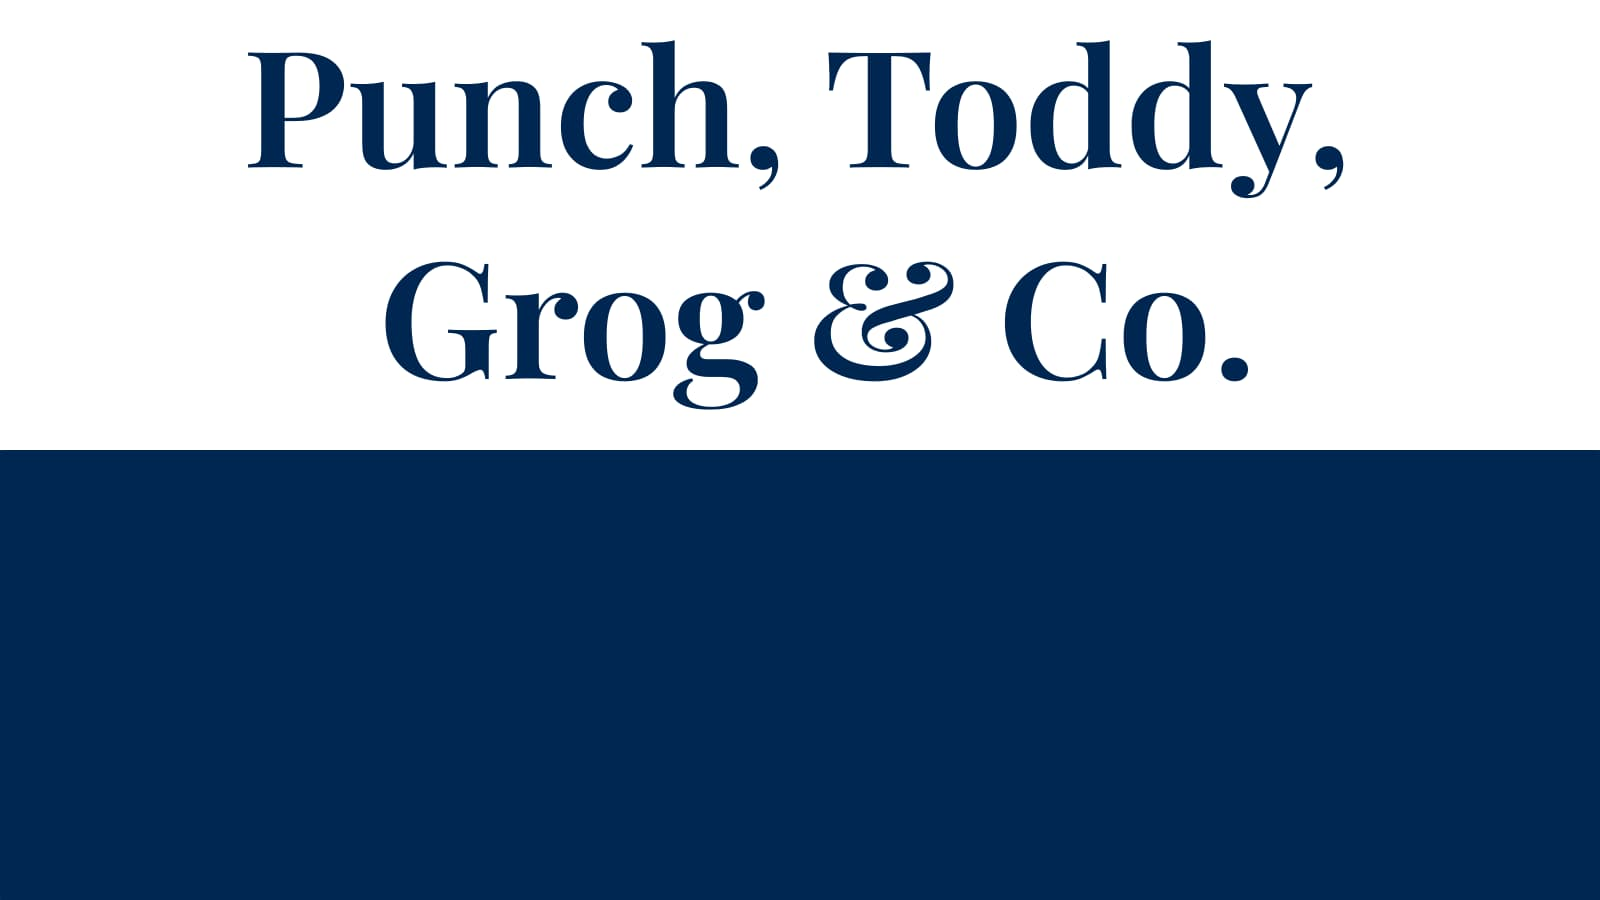 Punch, Toddy, Grog & Co. - Introduction